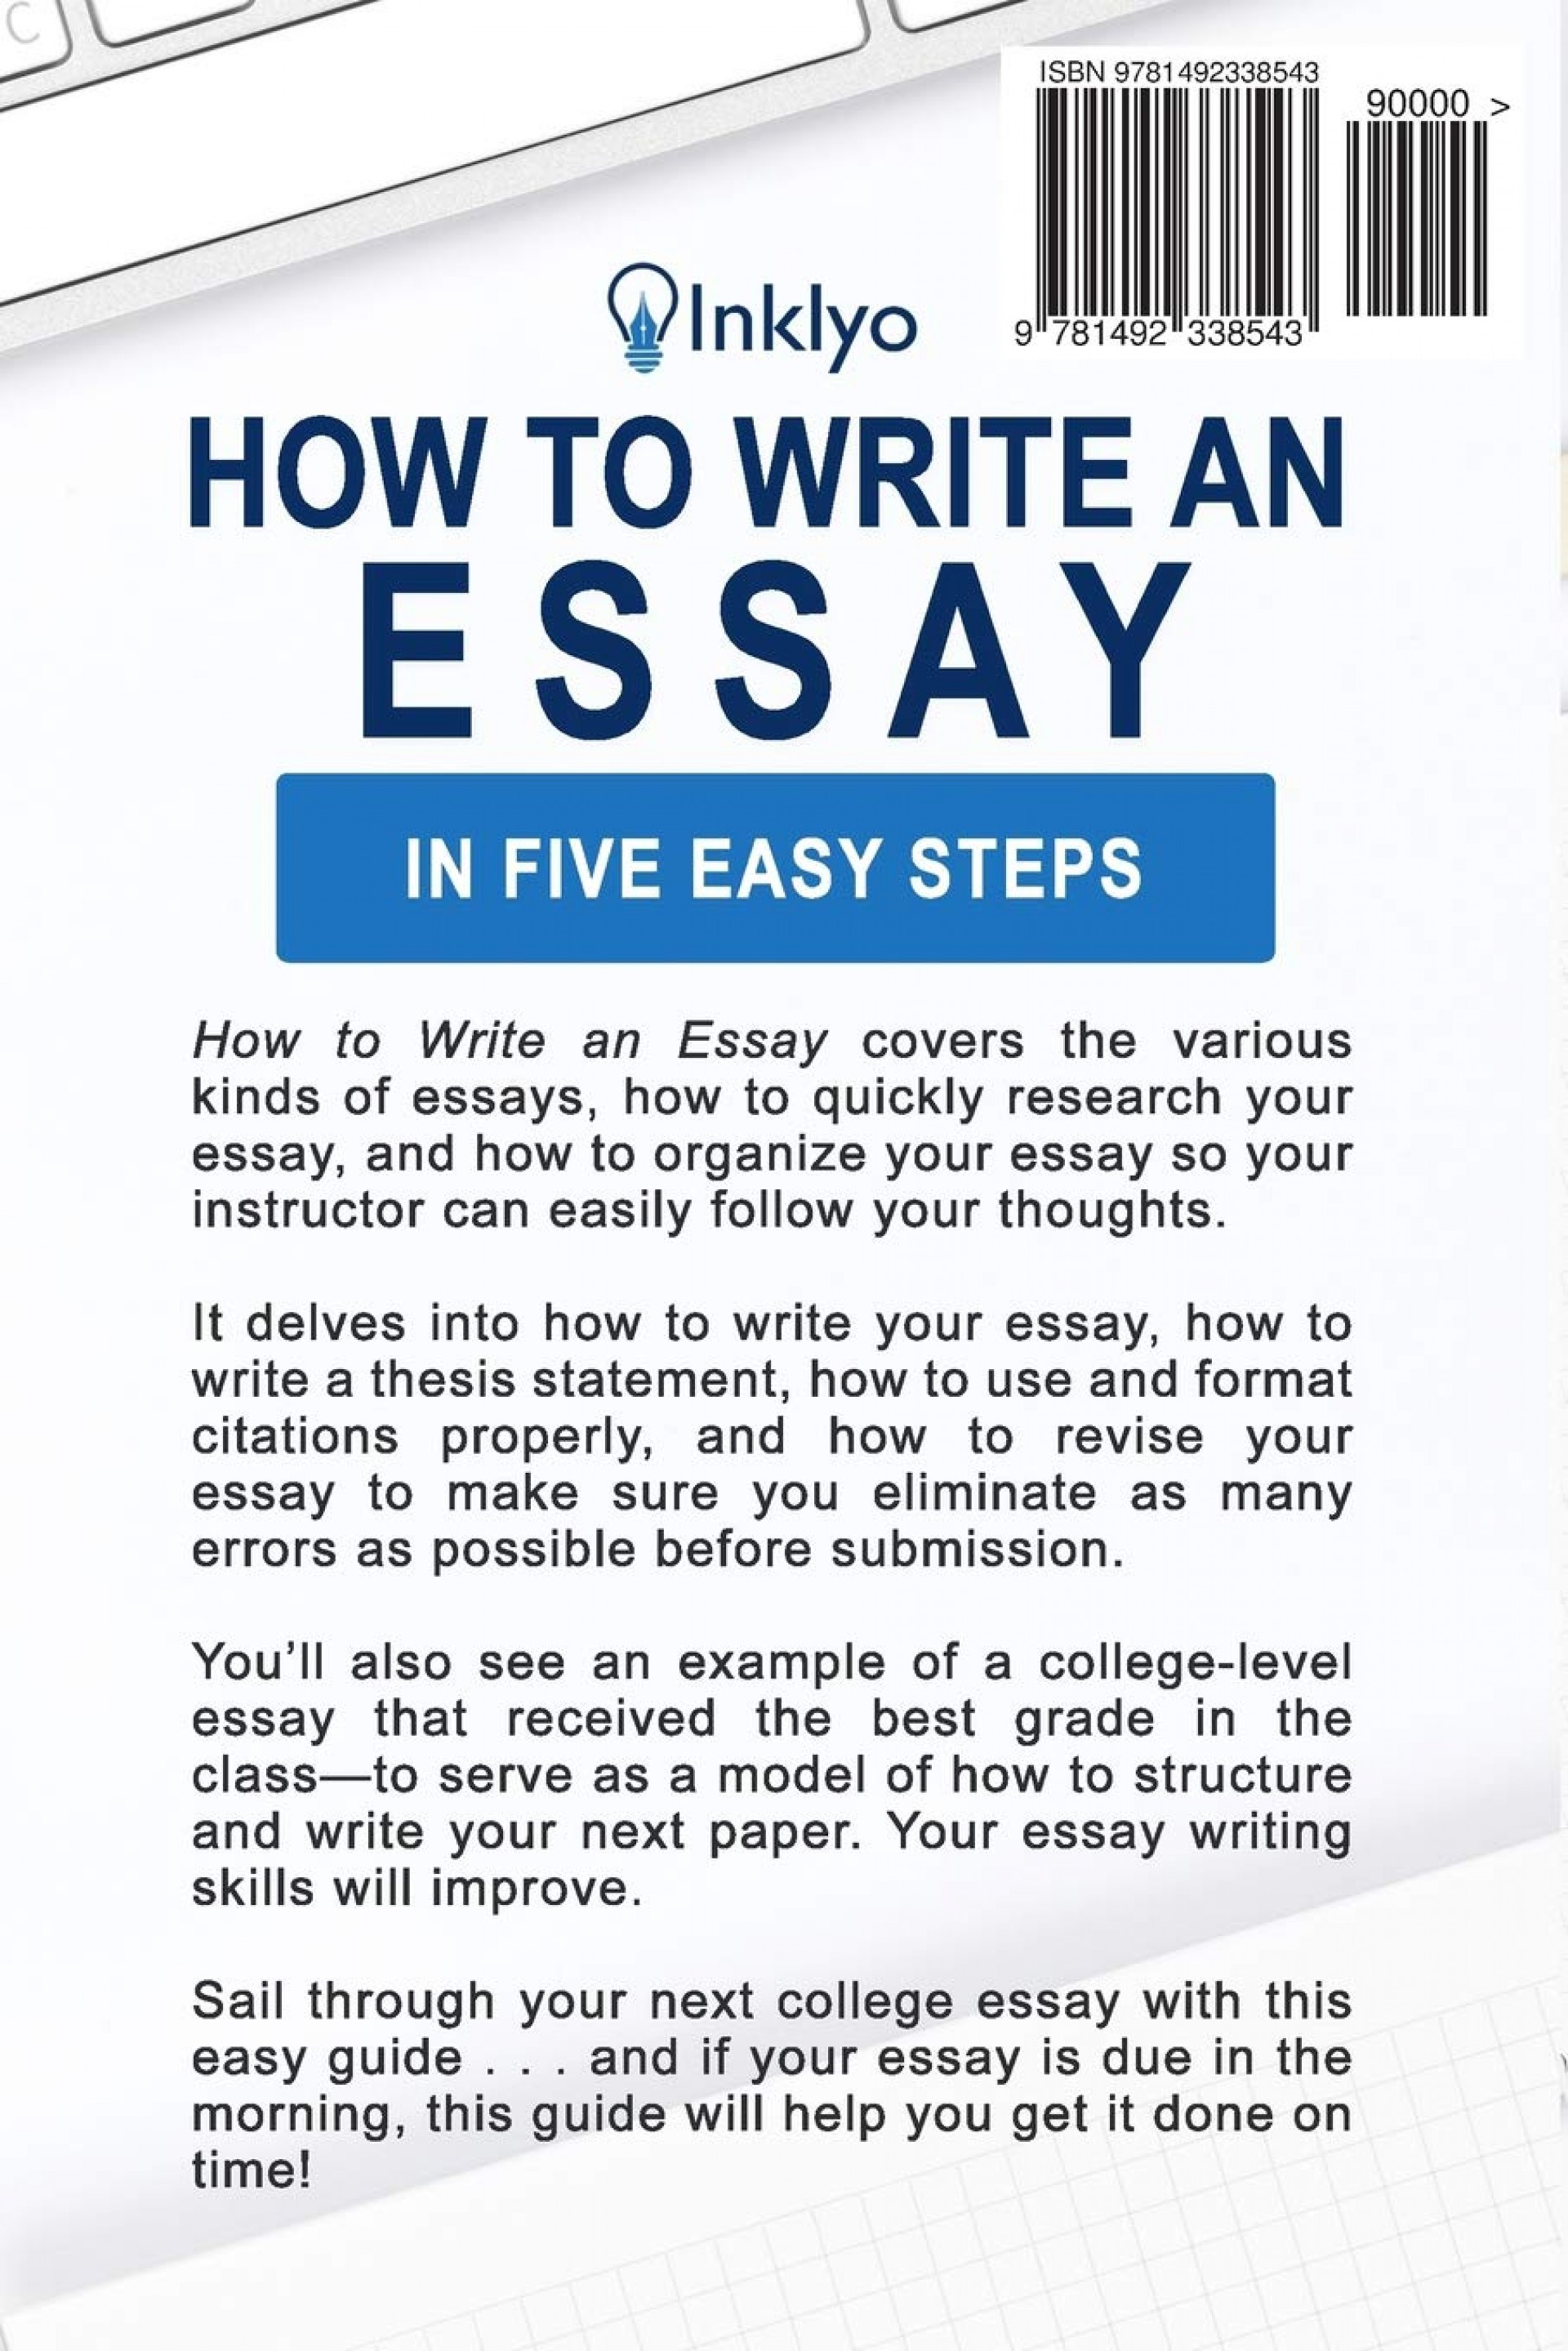 002 How To Write An Essay Example Shocking About Yourself Conclusion Pdf Academic Fast 1920